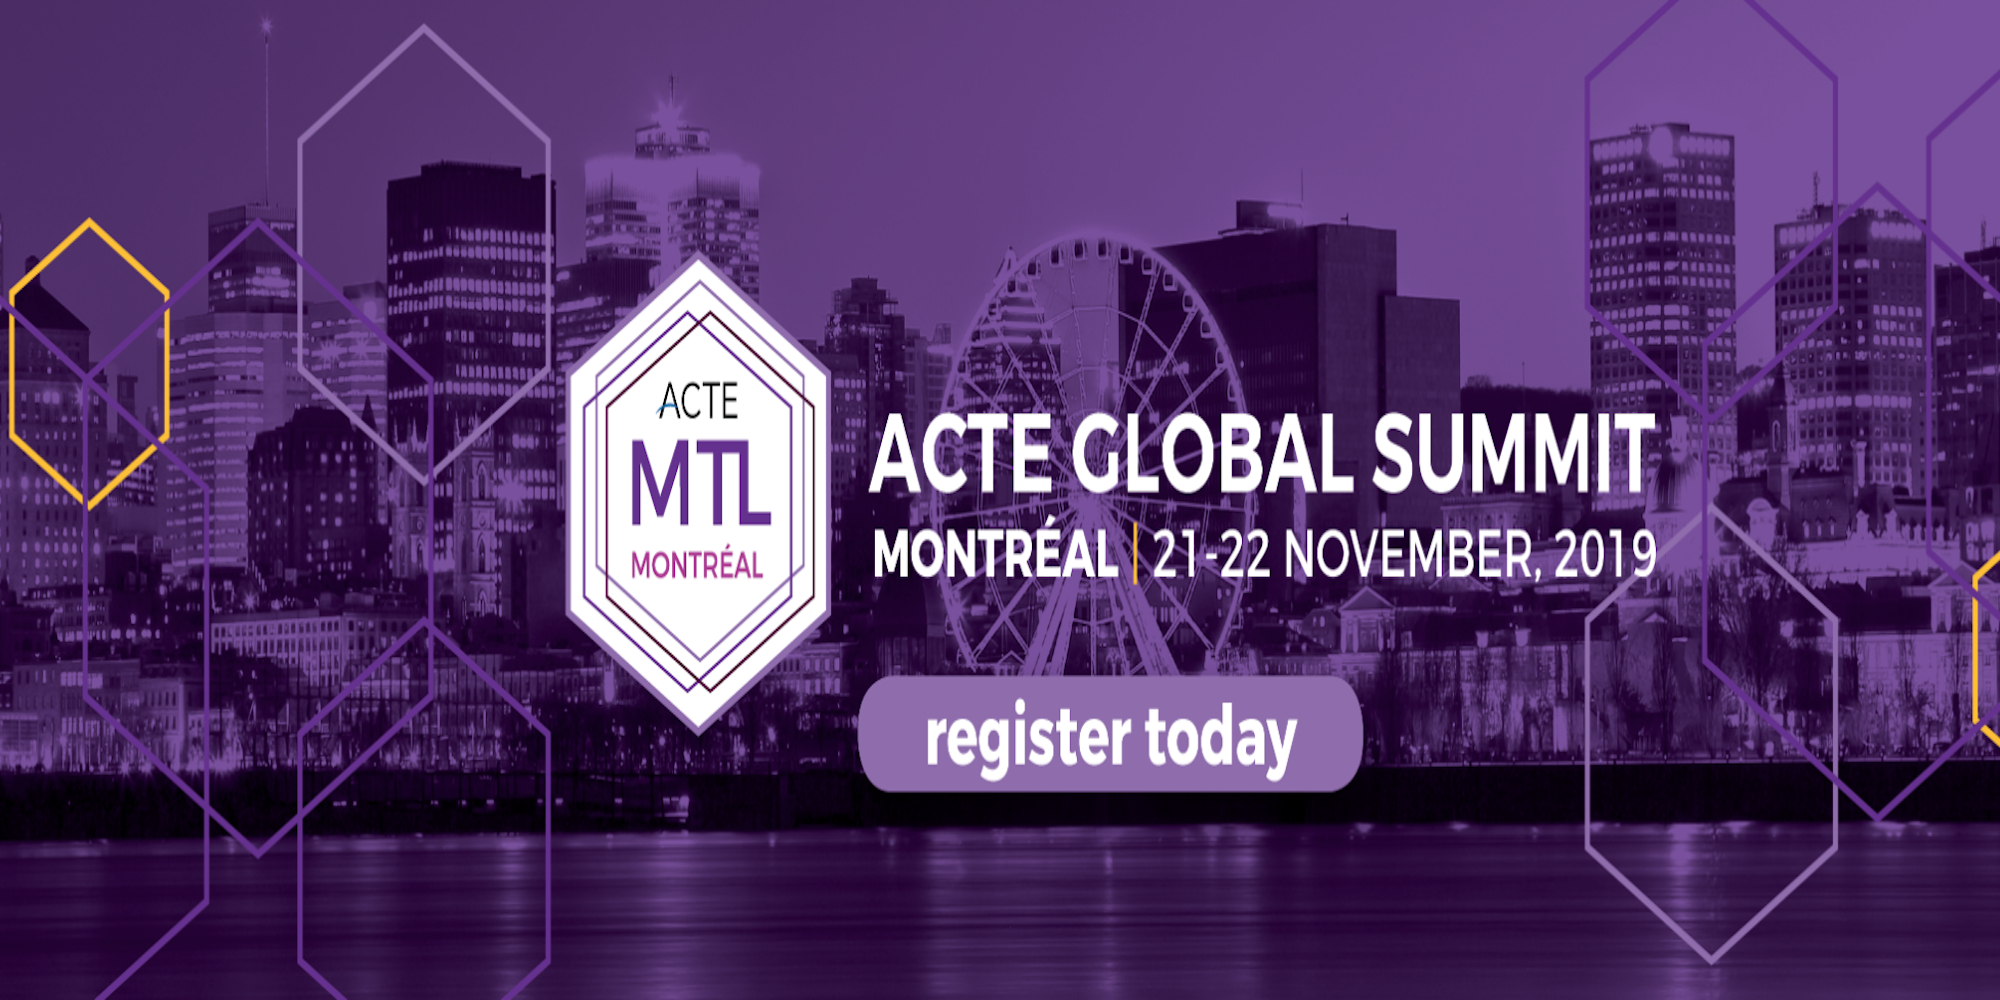 ACTE Global Summit Montreal